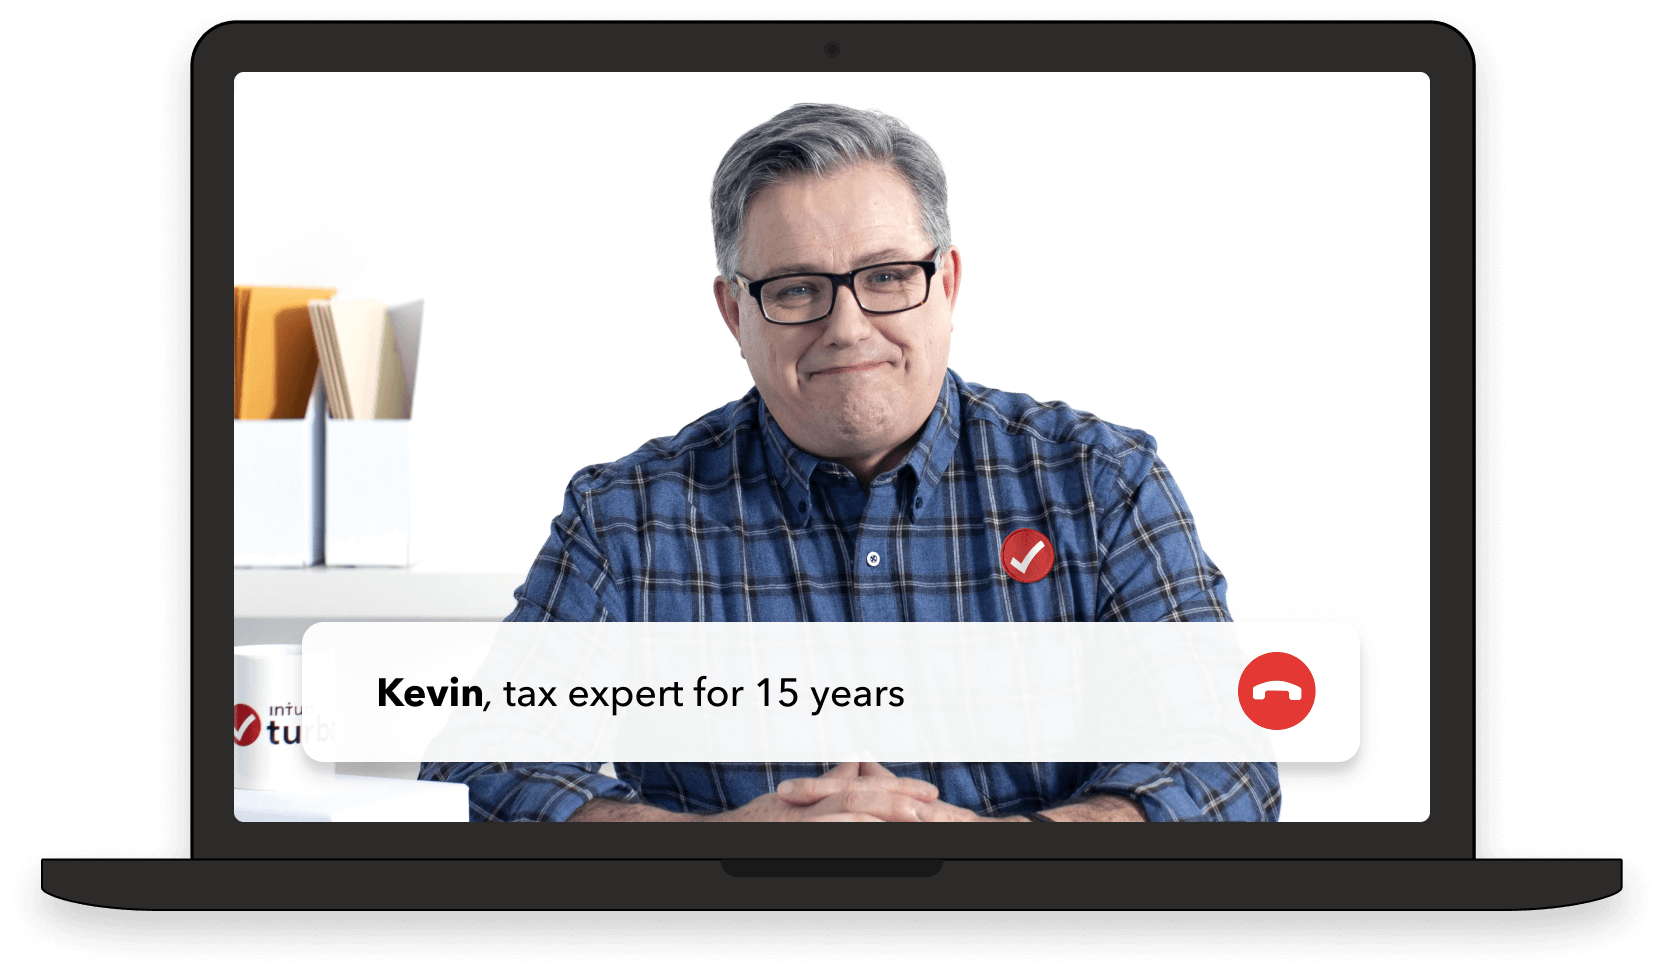 Self-employed tax expert on laptop screen